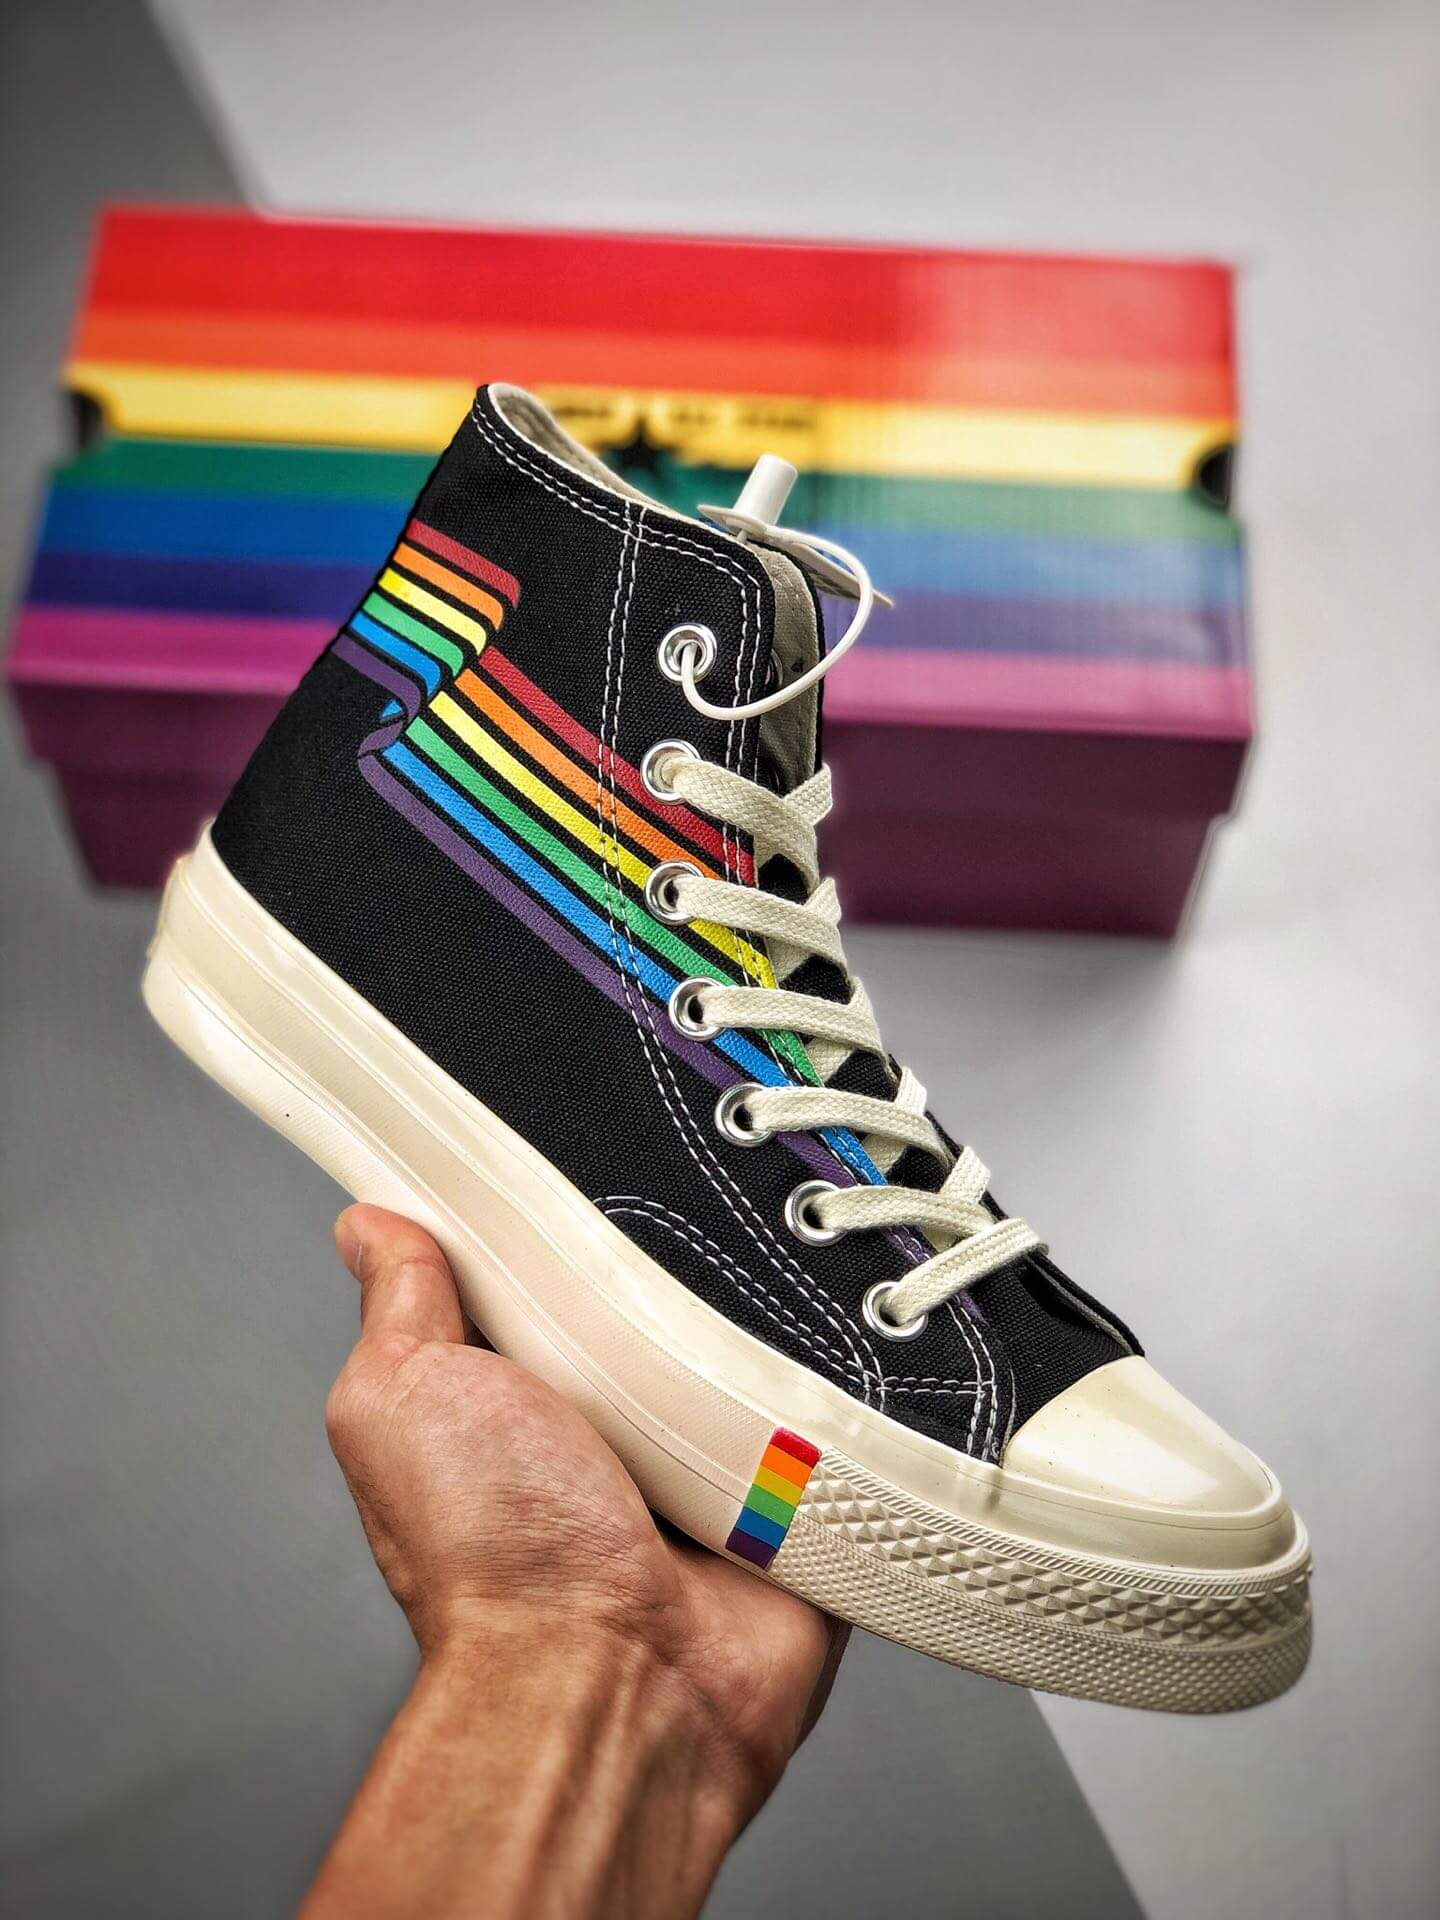 The Converse Chuck Taylor All Star 70S Pride Black Rainbow High-Top Repshoes